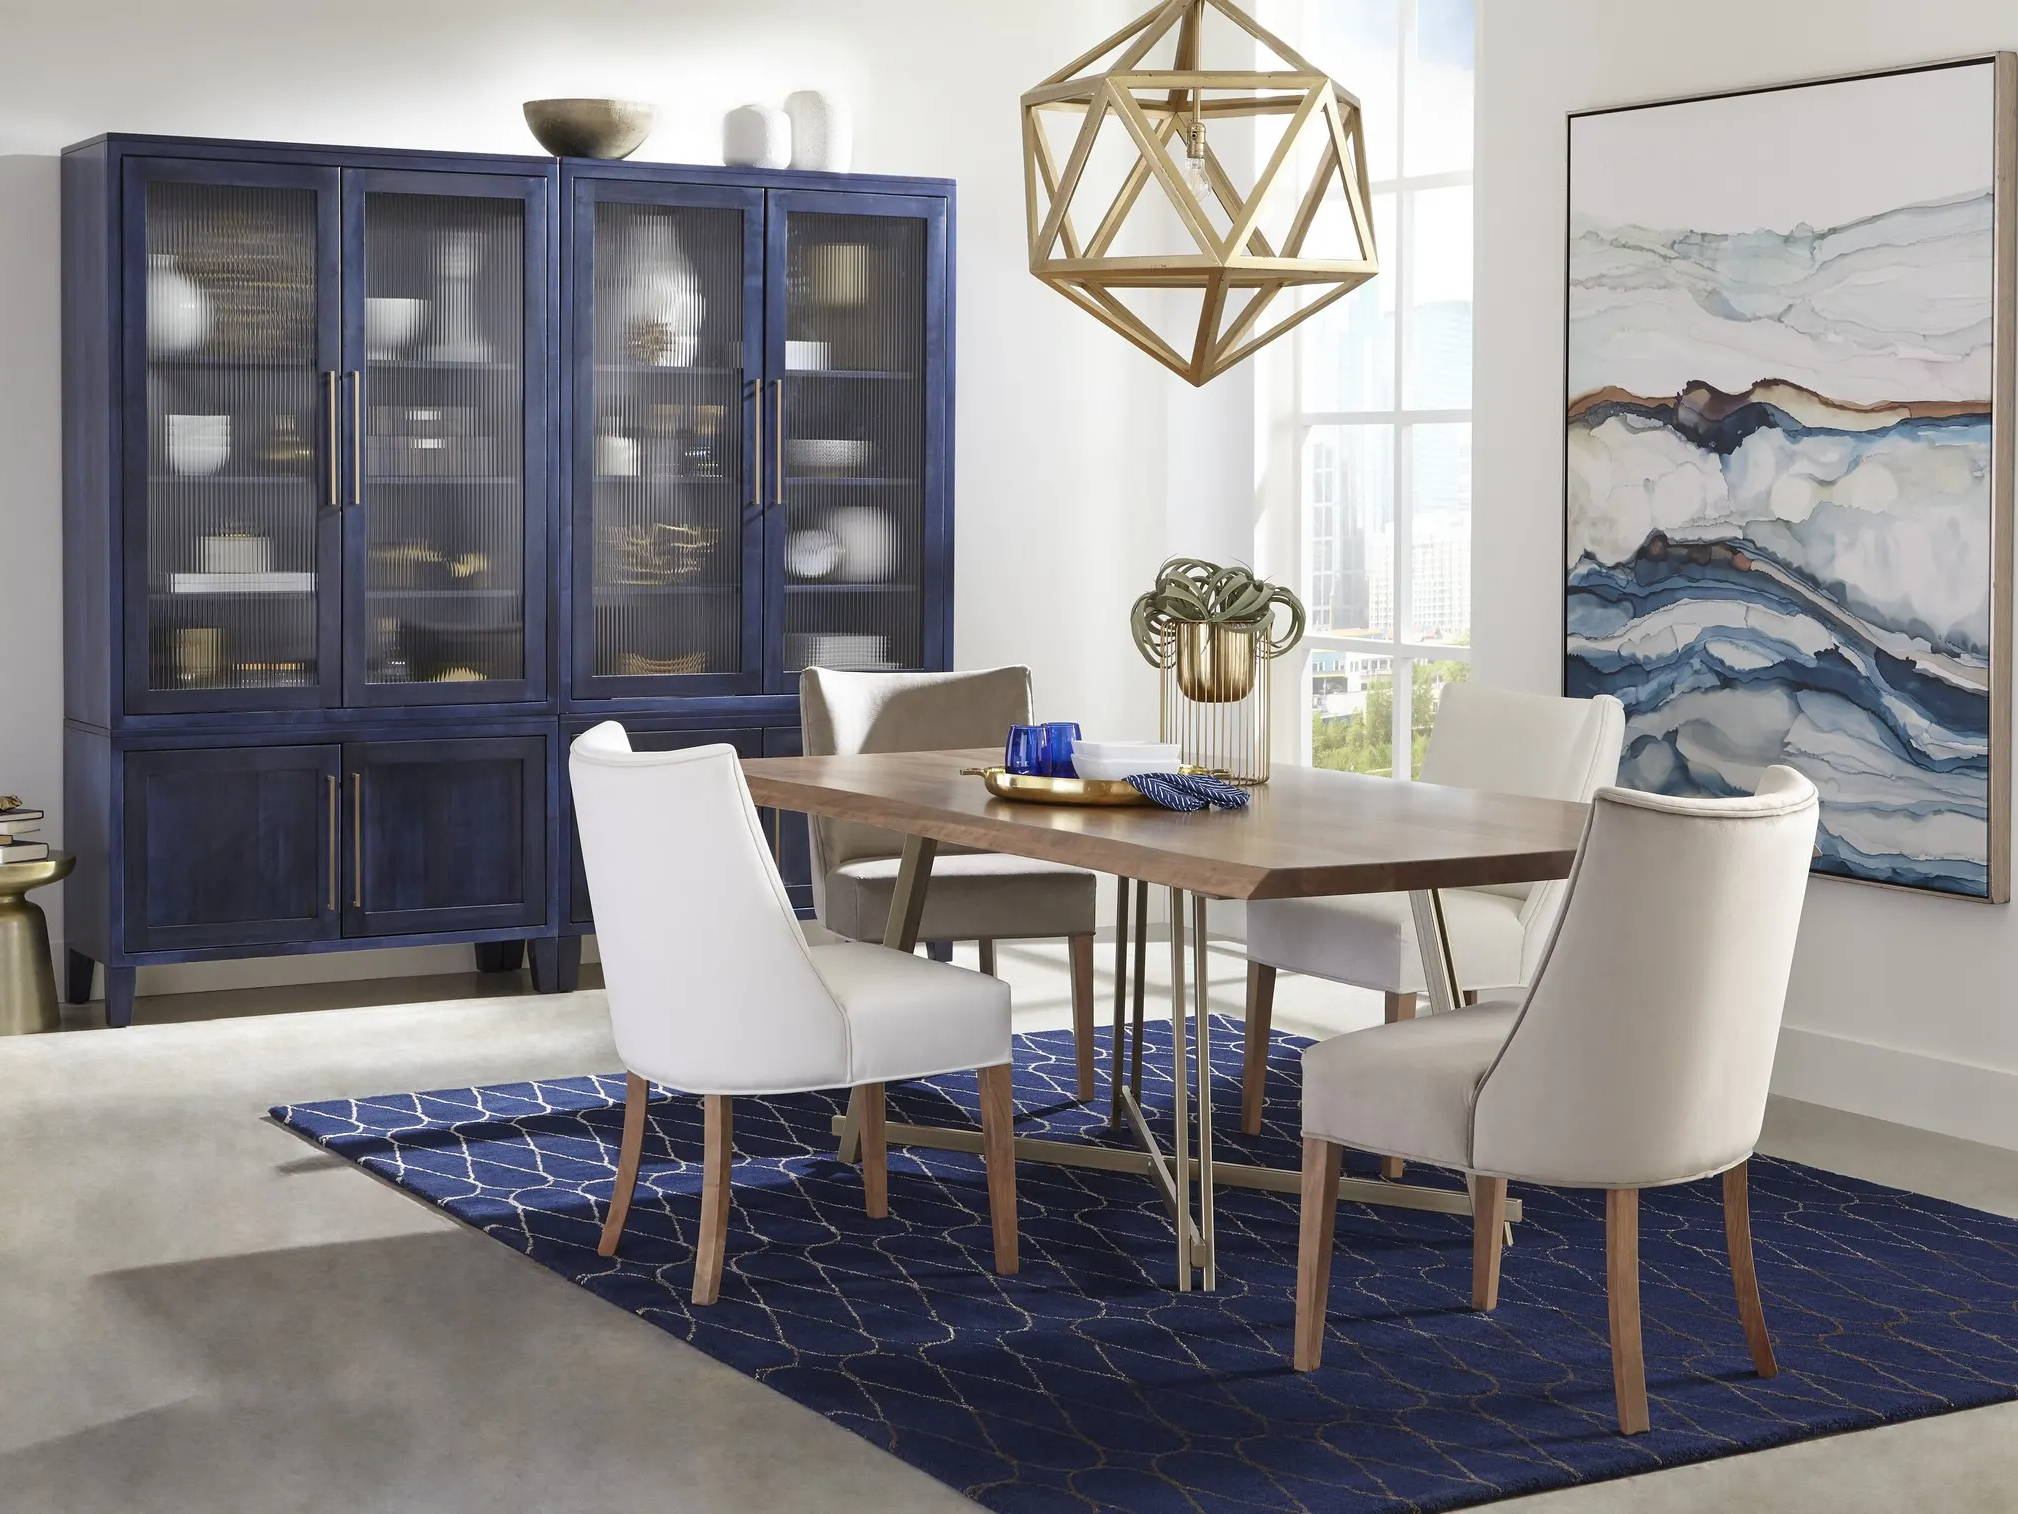 dining room scene with upholstered chairs around small table in front of large display cabinets